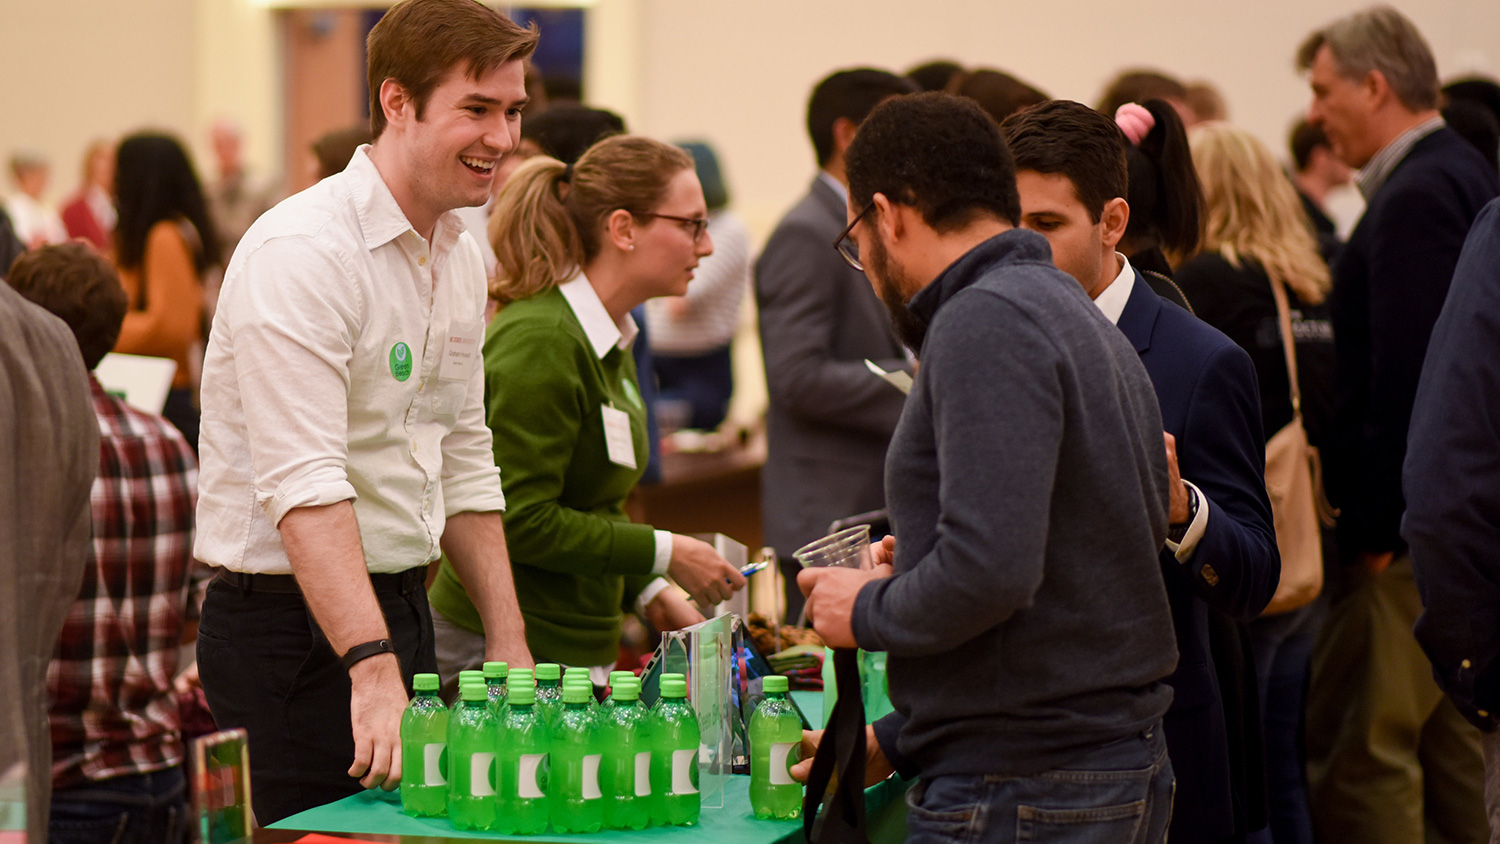 Student entrepreneurs discuss their ventures at the Expo, part of the Lulu eGames.